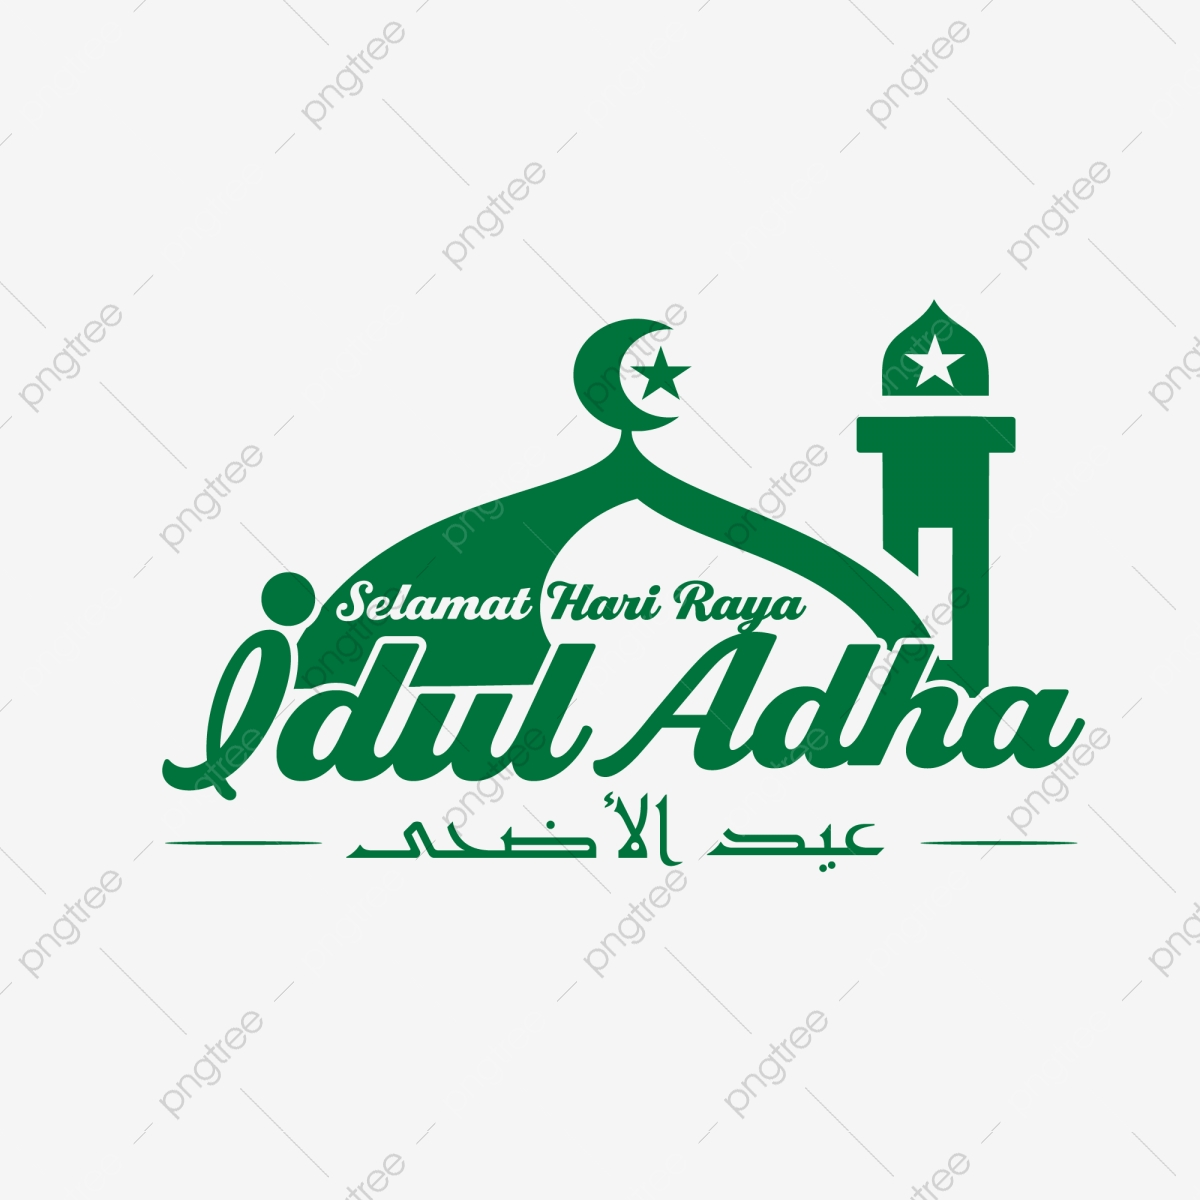 idul adha png images vector and psd files free download on pngtree https pngtree com freepng typography idul adha with mosque 5257519 html